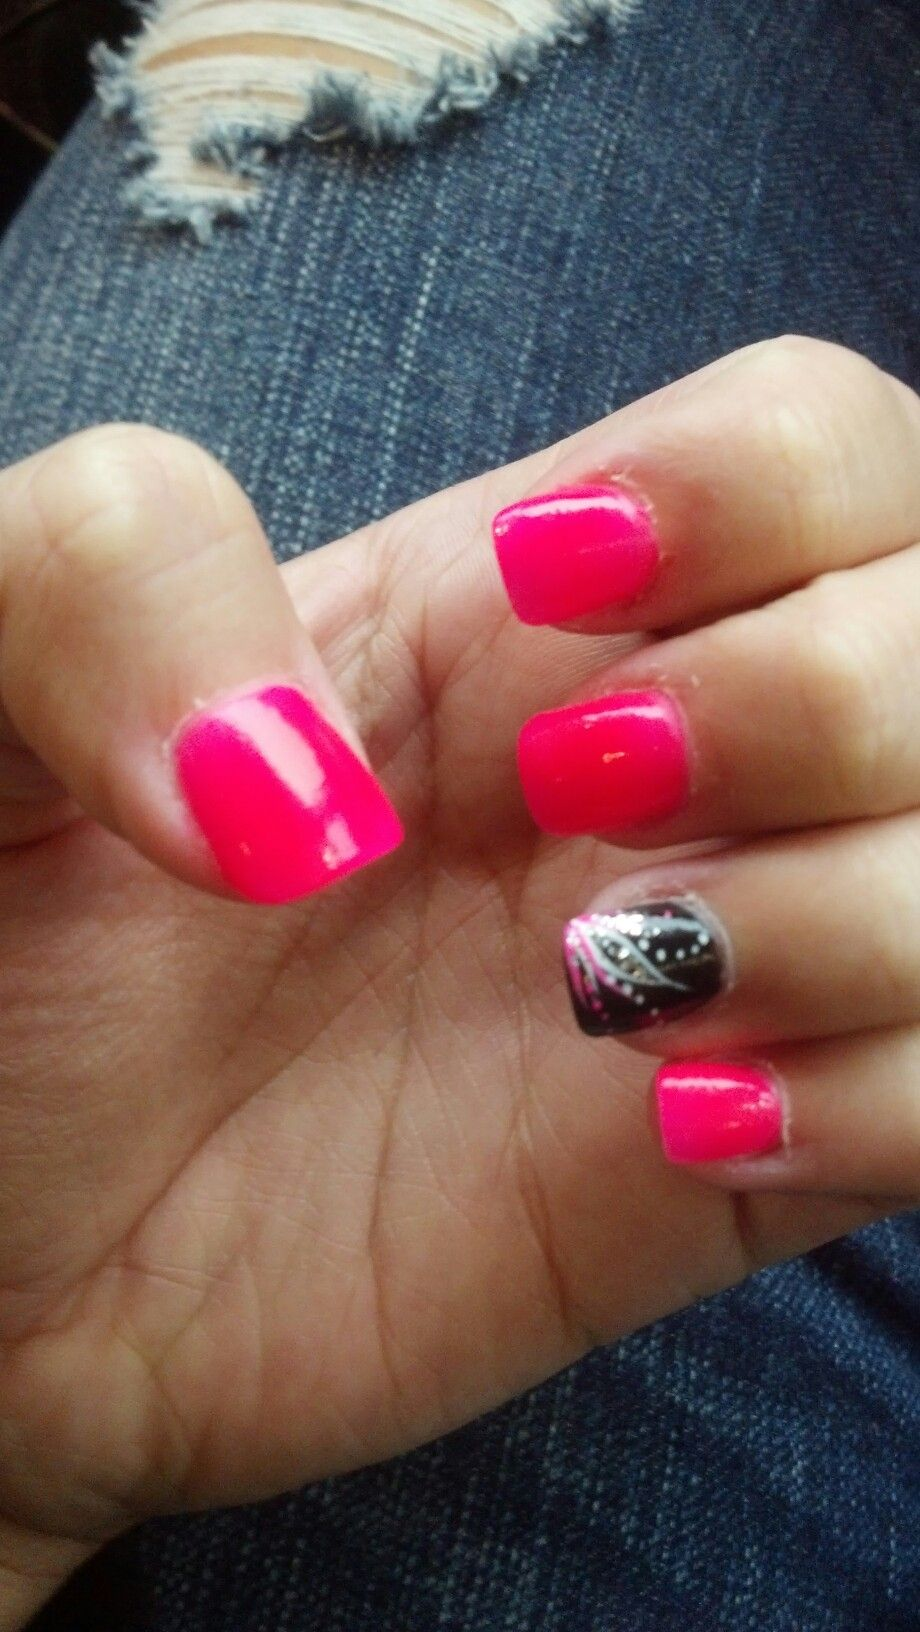 Cute Nail Design Summertime Nails Makeup Hair Beauty